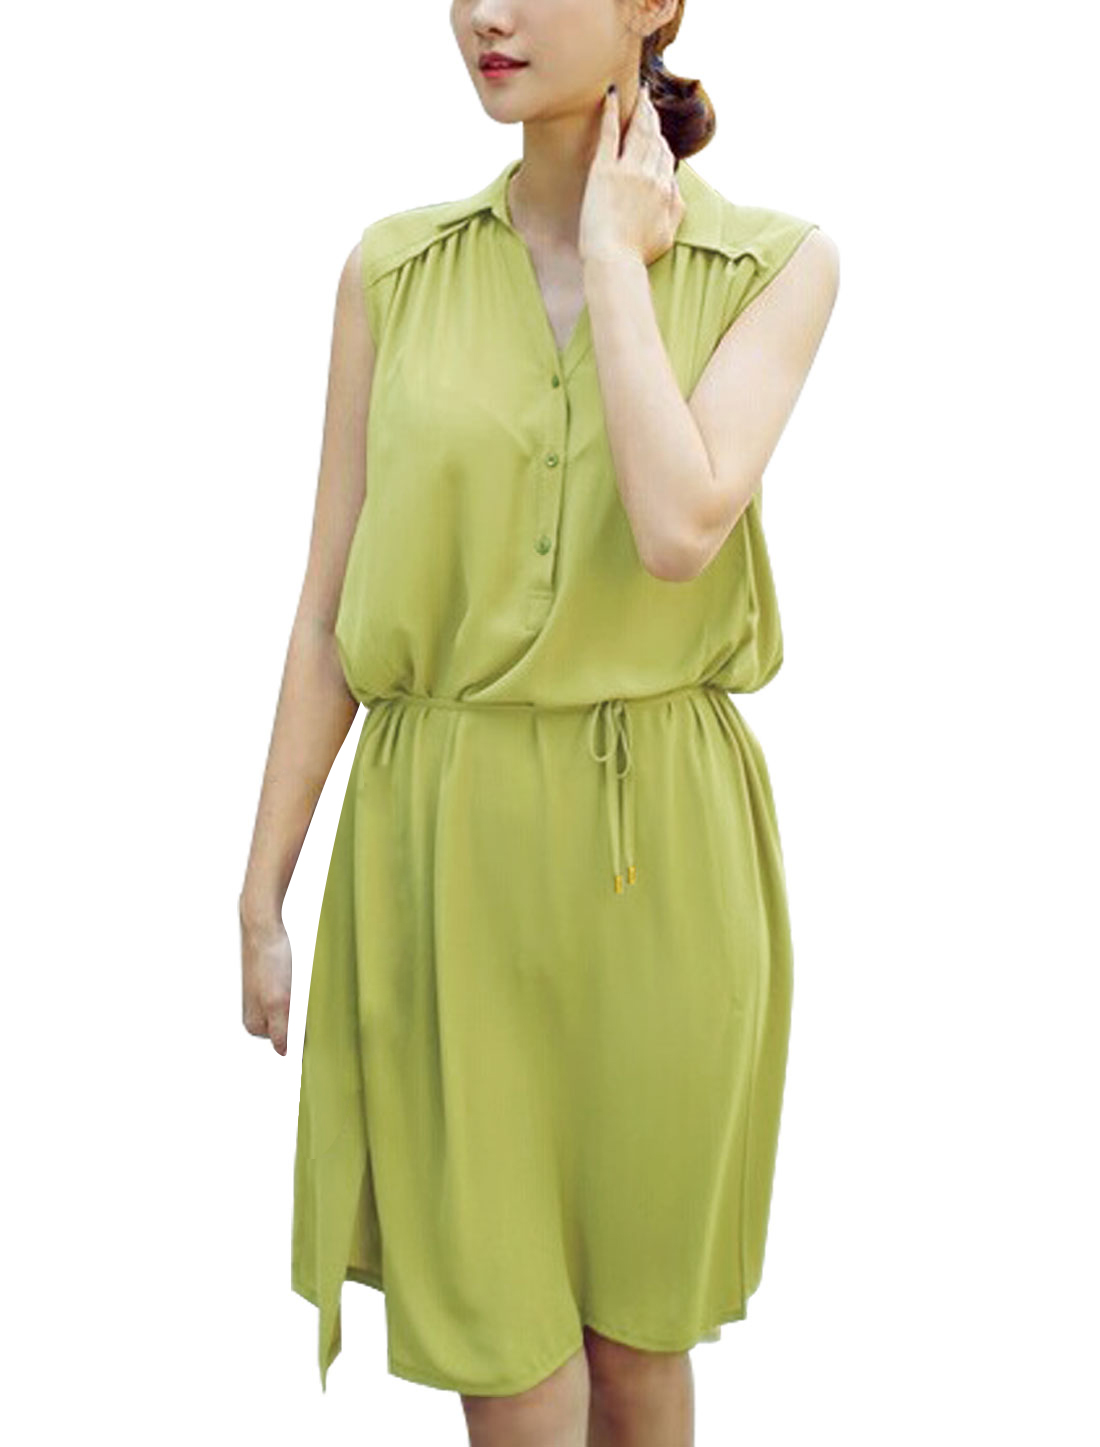 Lady's Sleeveless Self Tie Strap Waist Split Side Unlined Chiffon Dress Green M